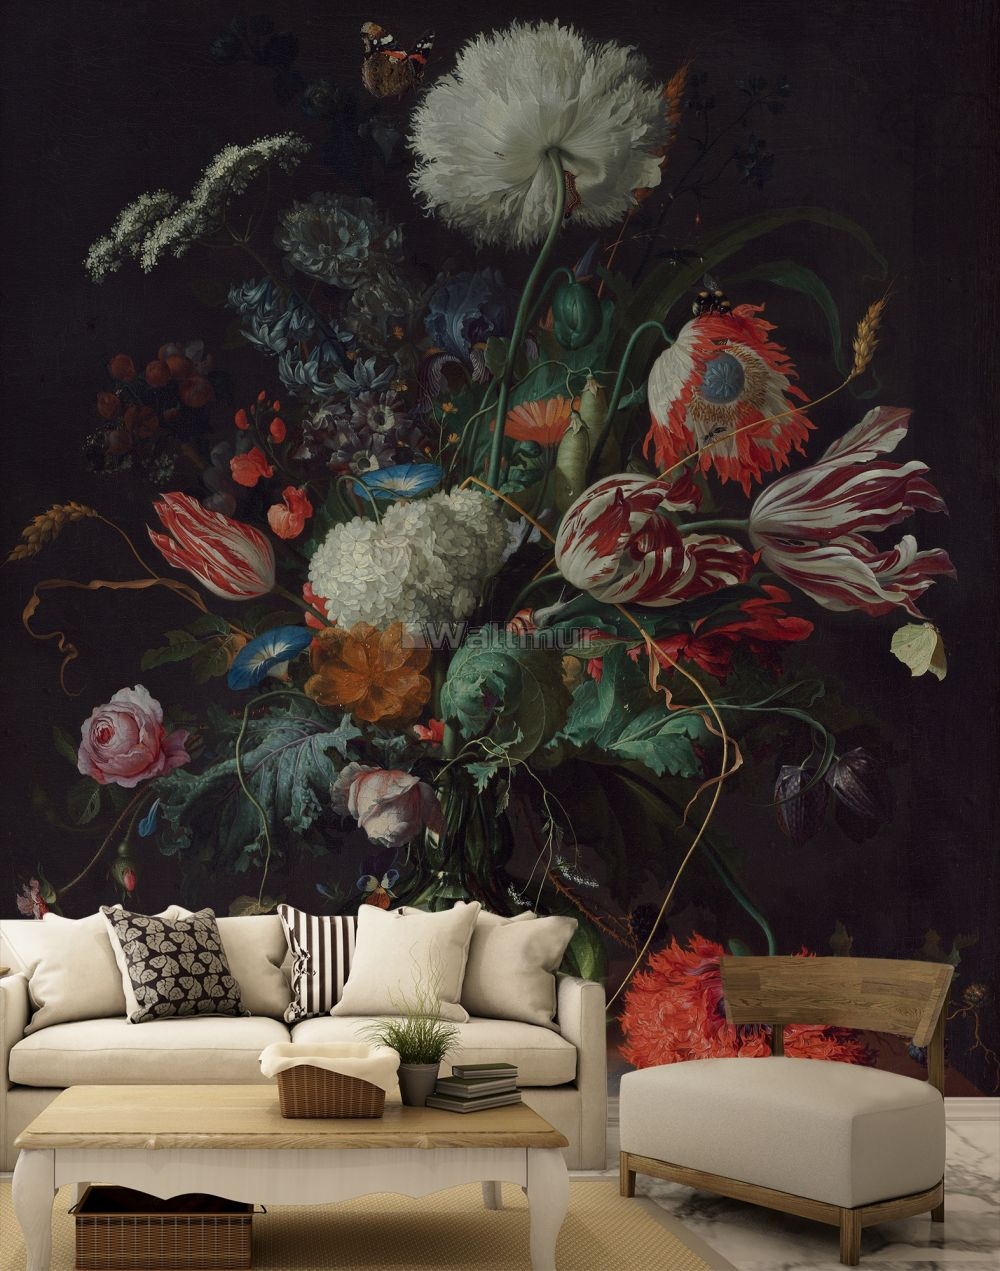 Dark Floral Bouqet With Tulips And Roses Wallpaper Mural Wallmur